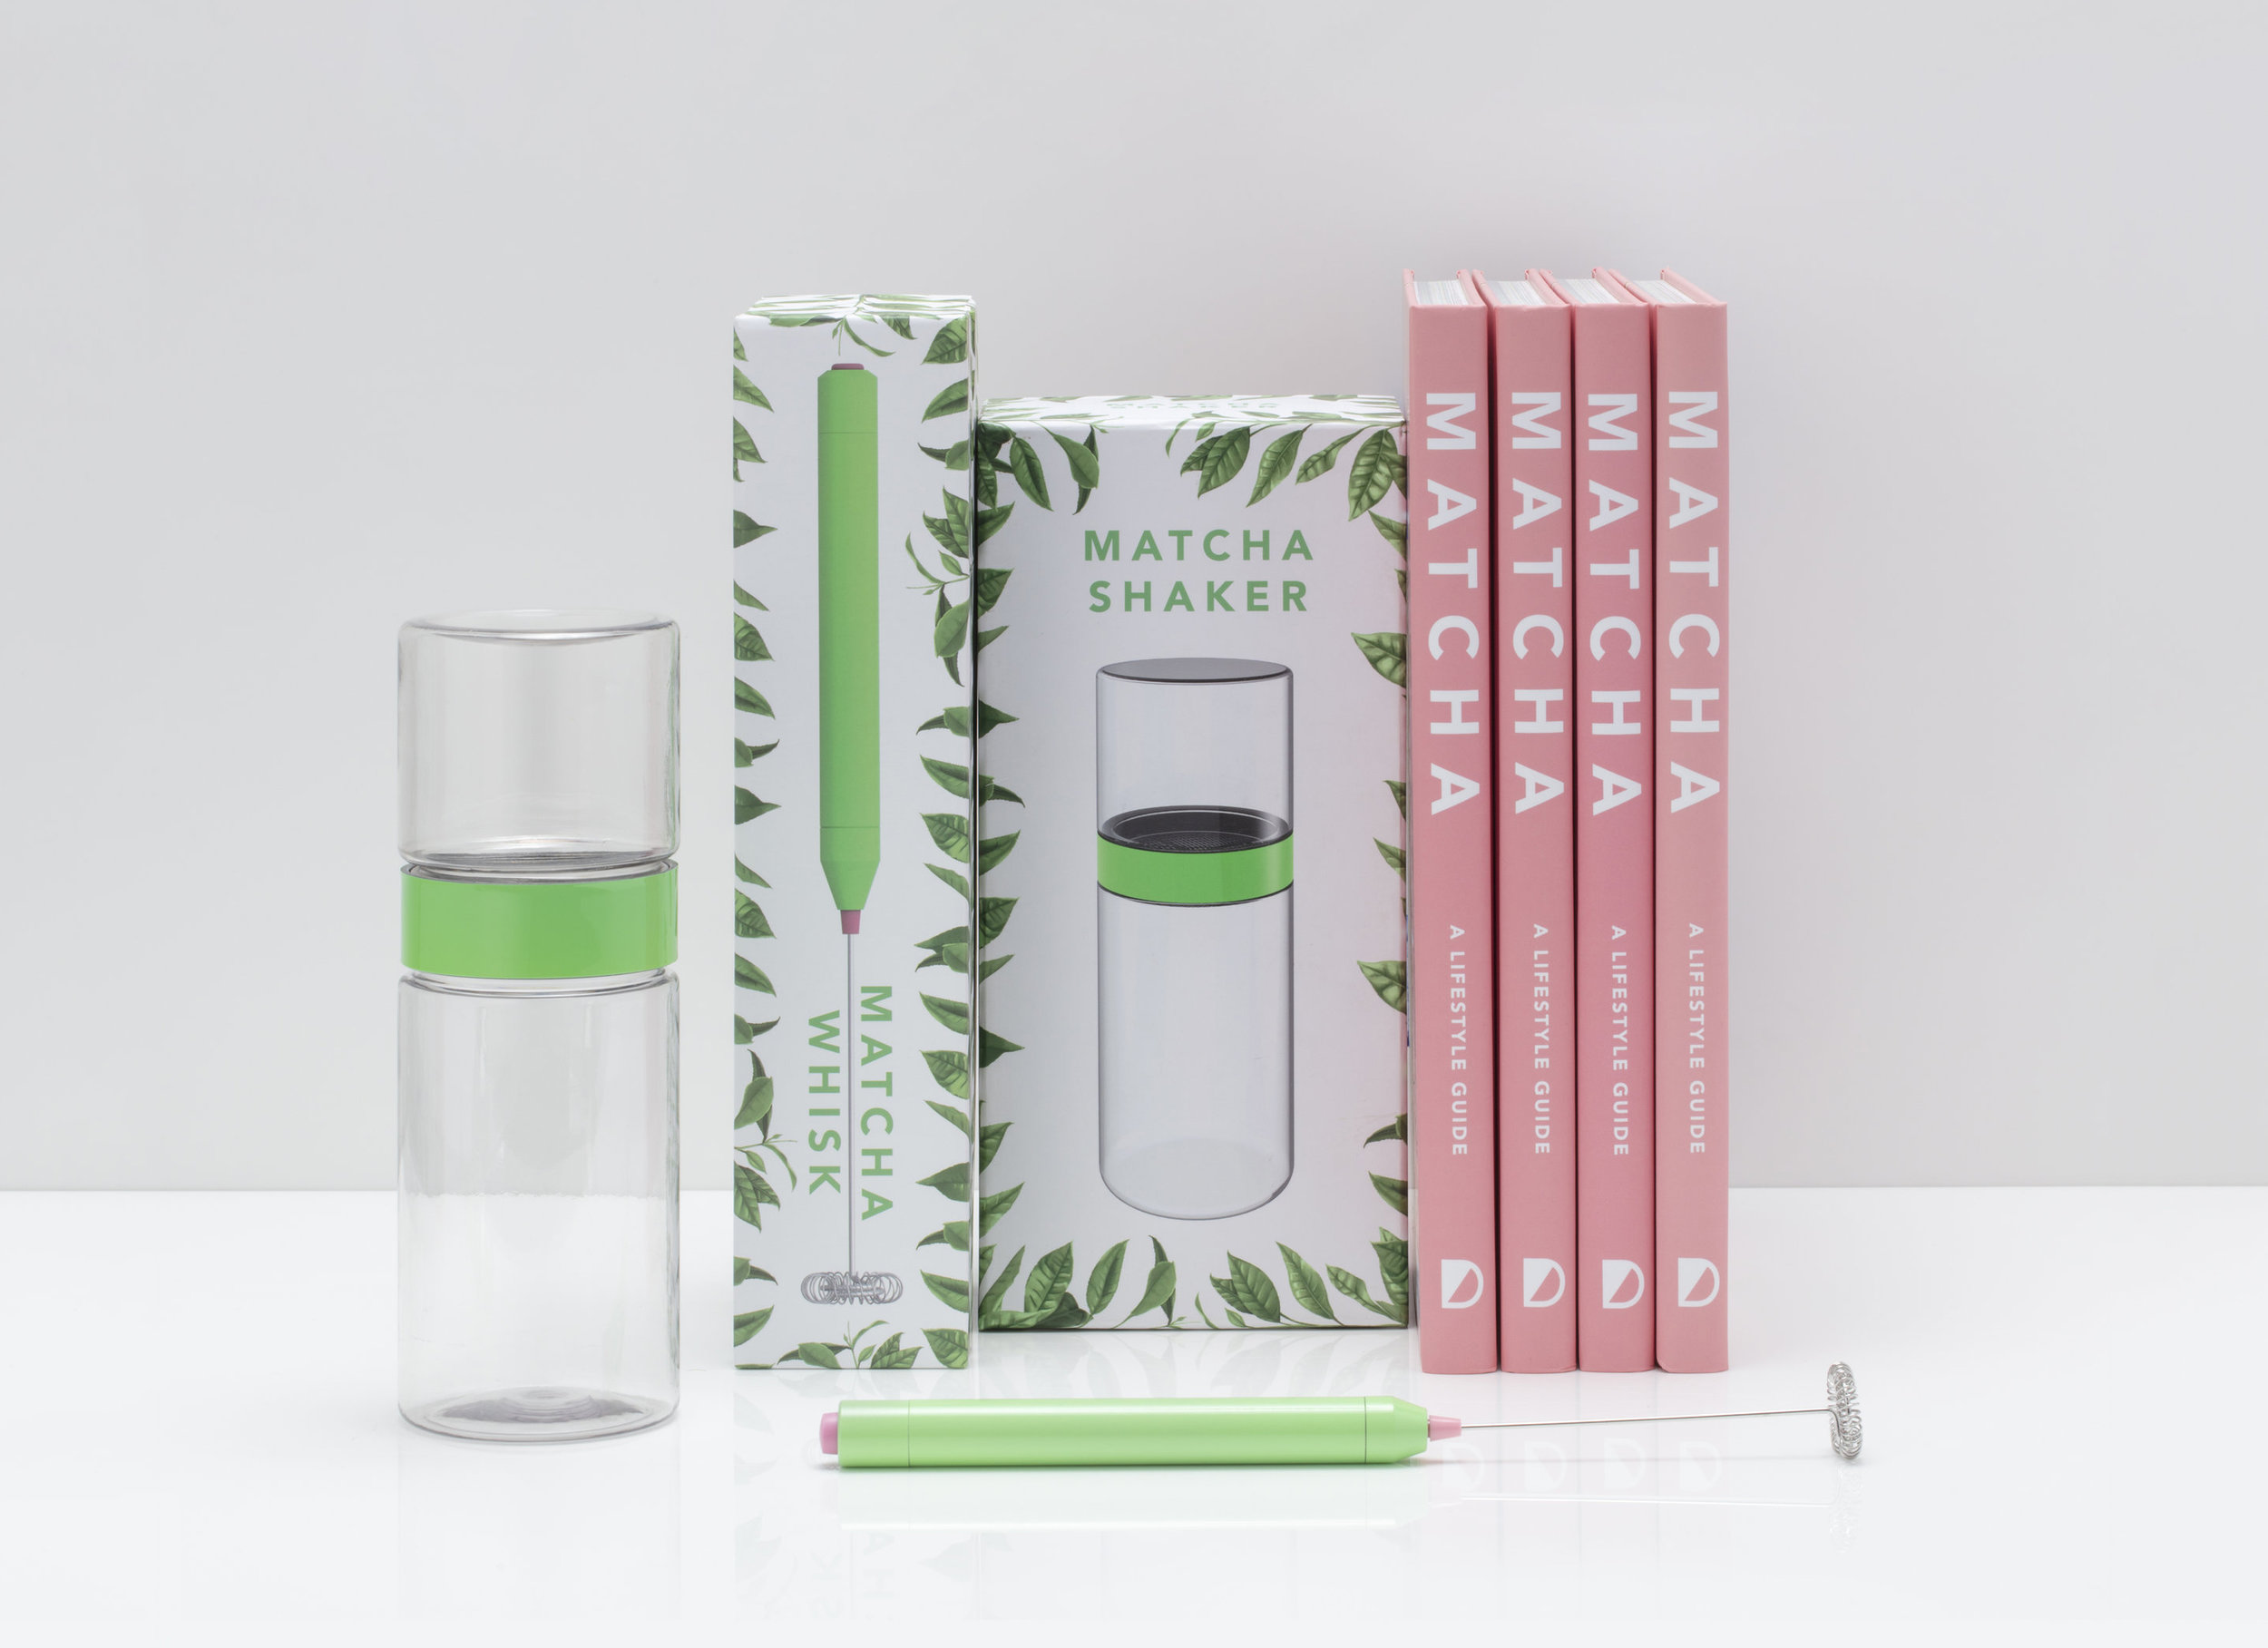 will-pay-matcha-packaging-3